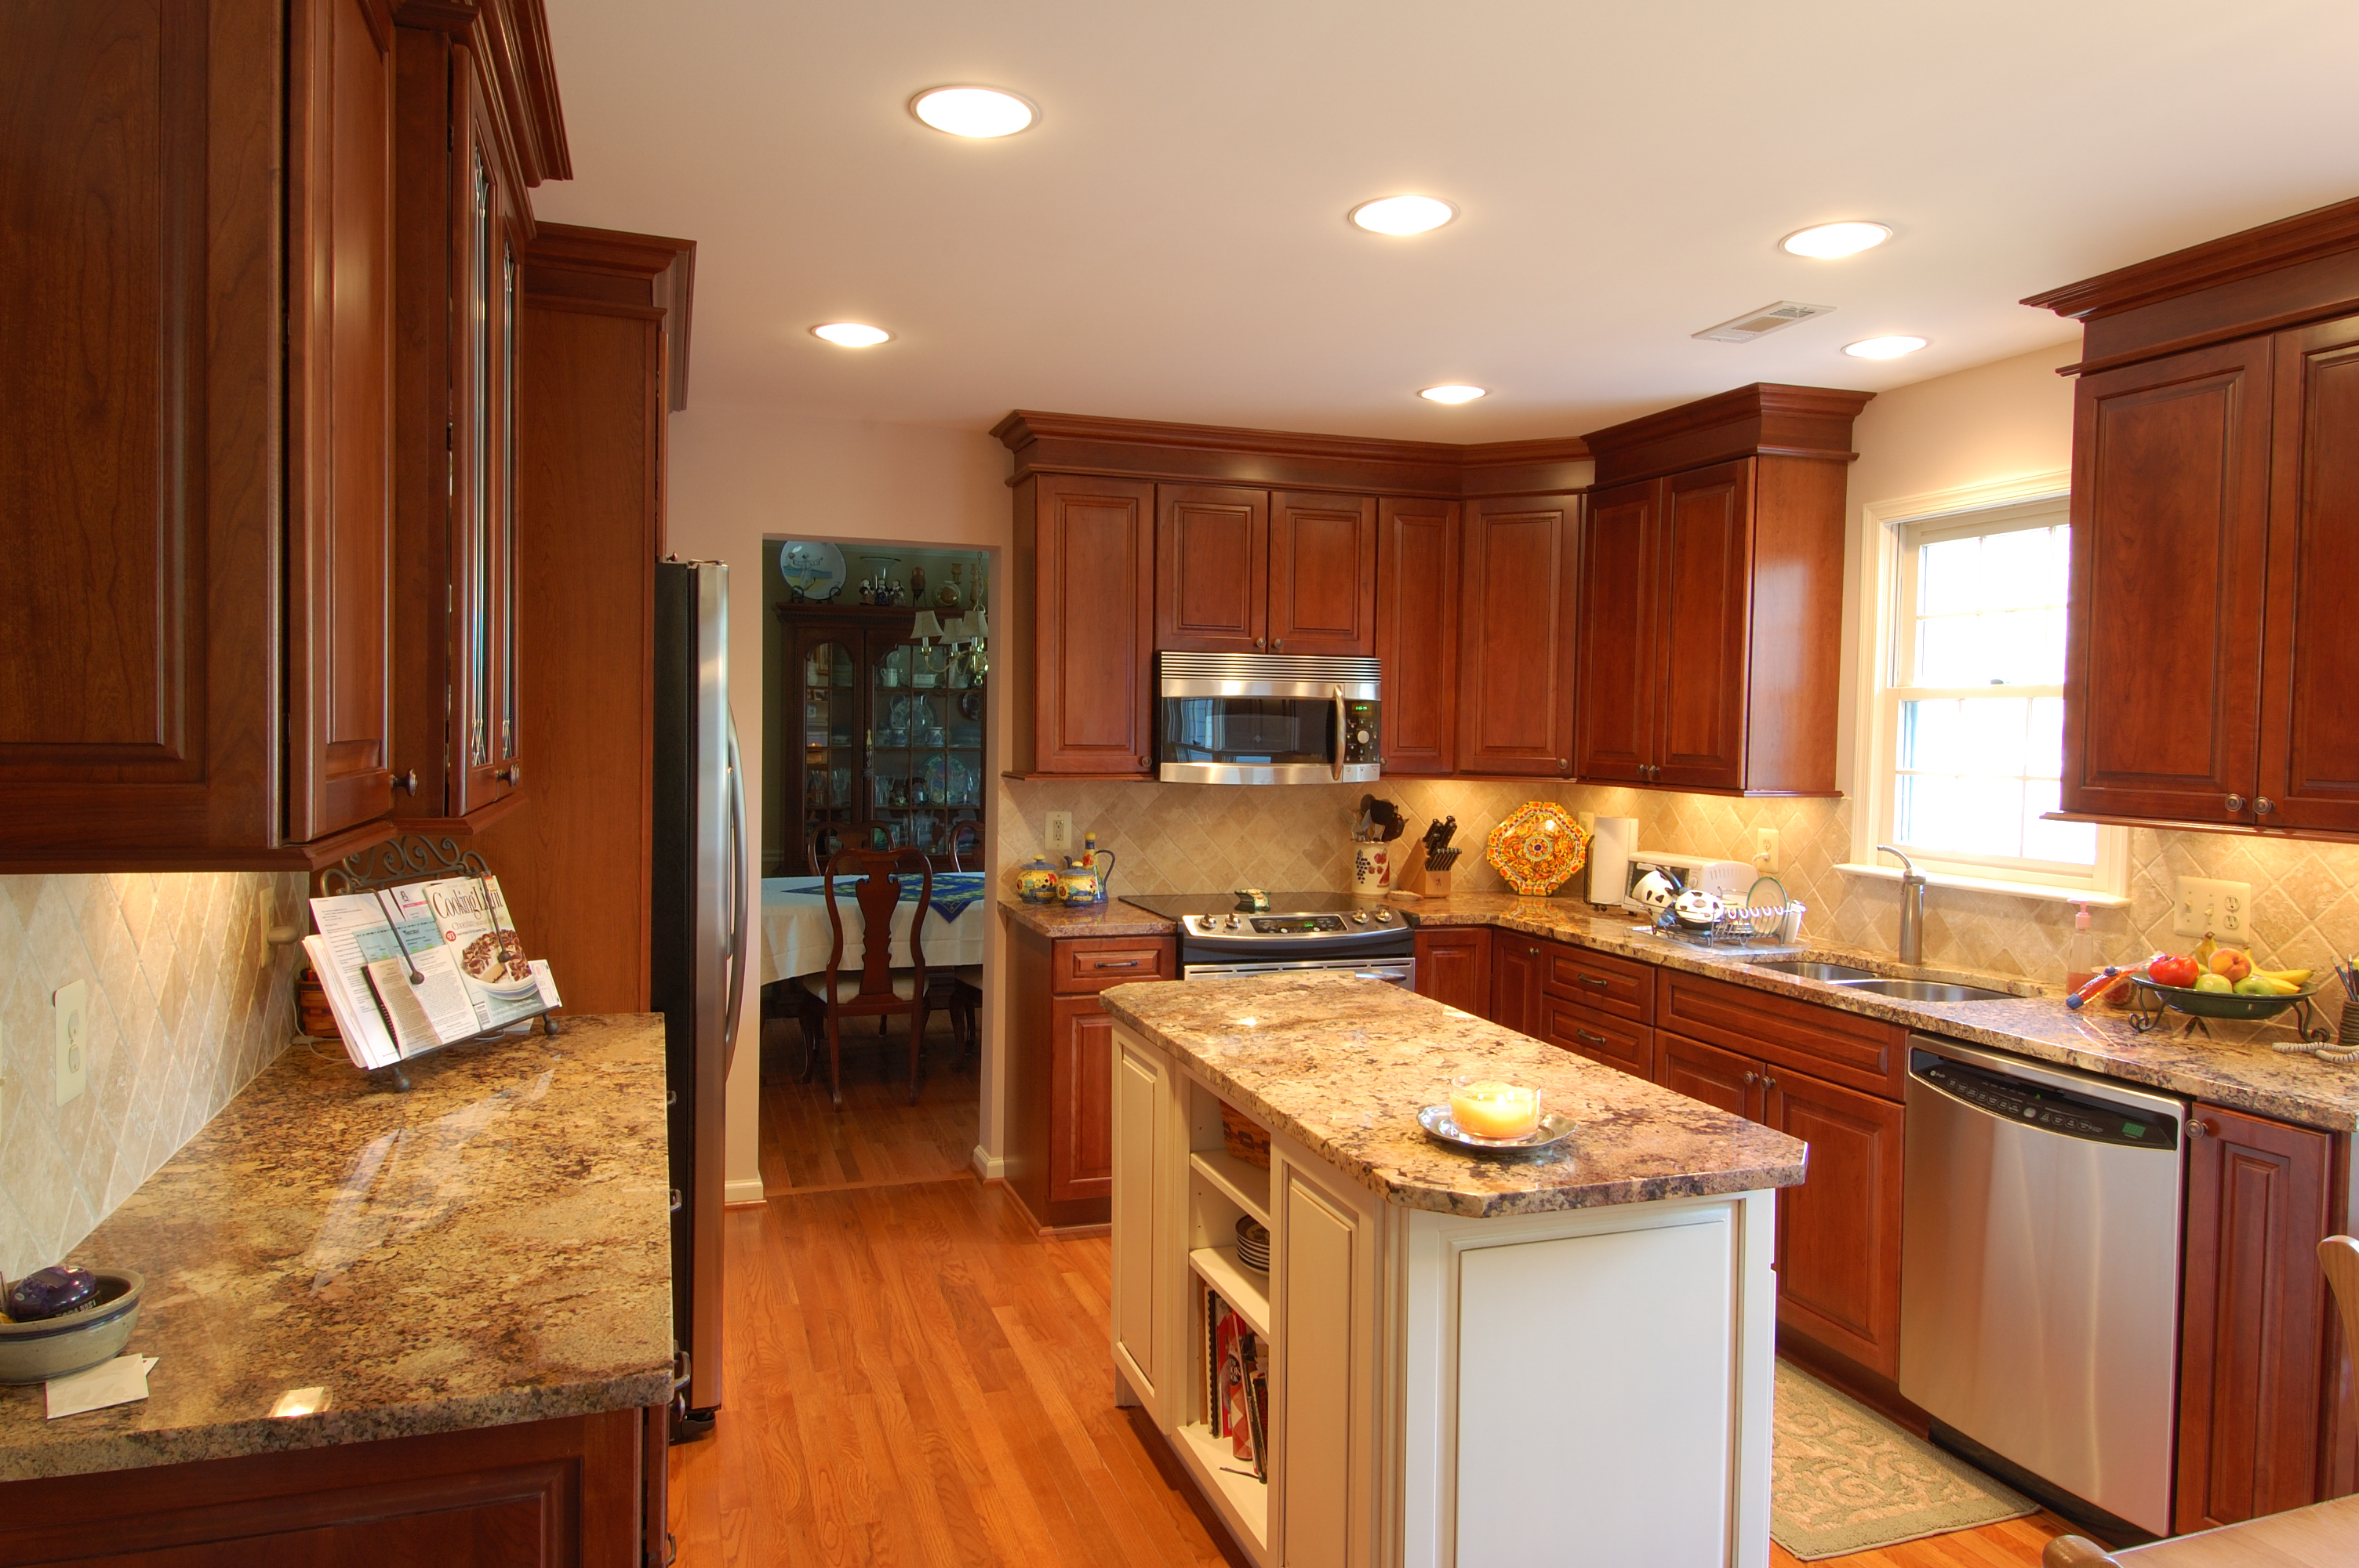 selections affect your kitchen remodel price northwood construction